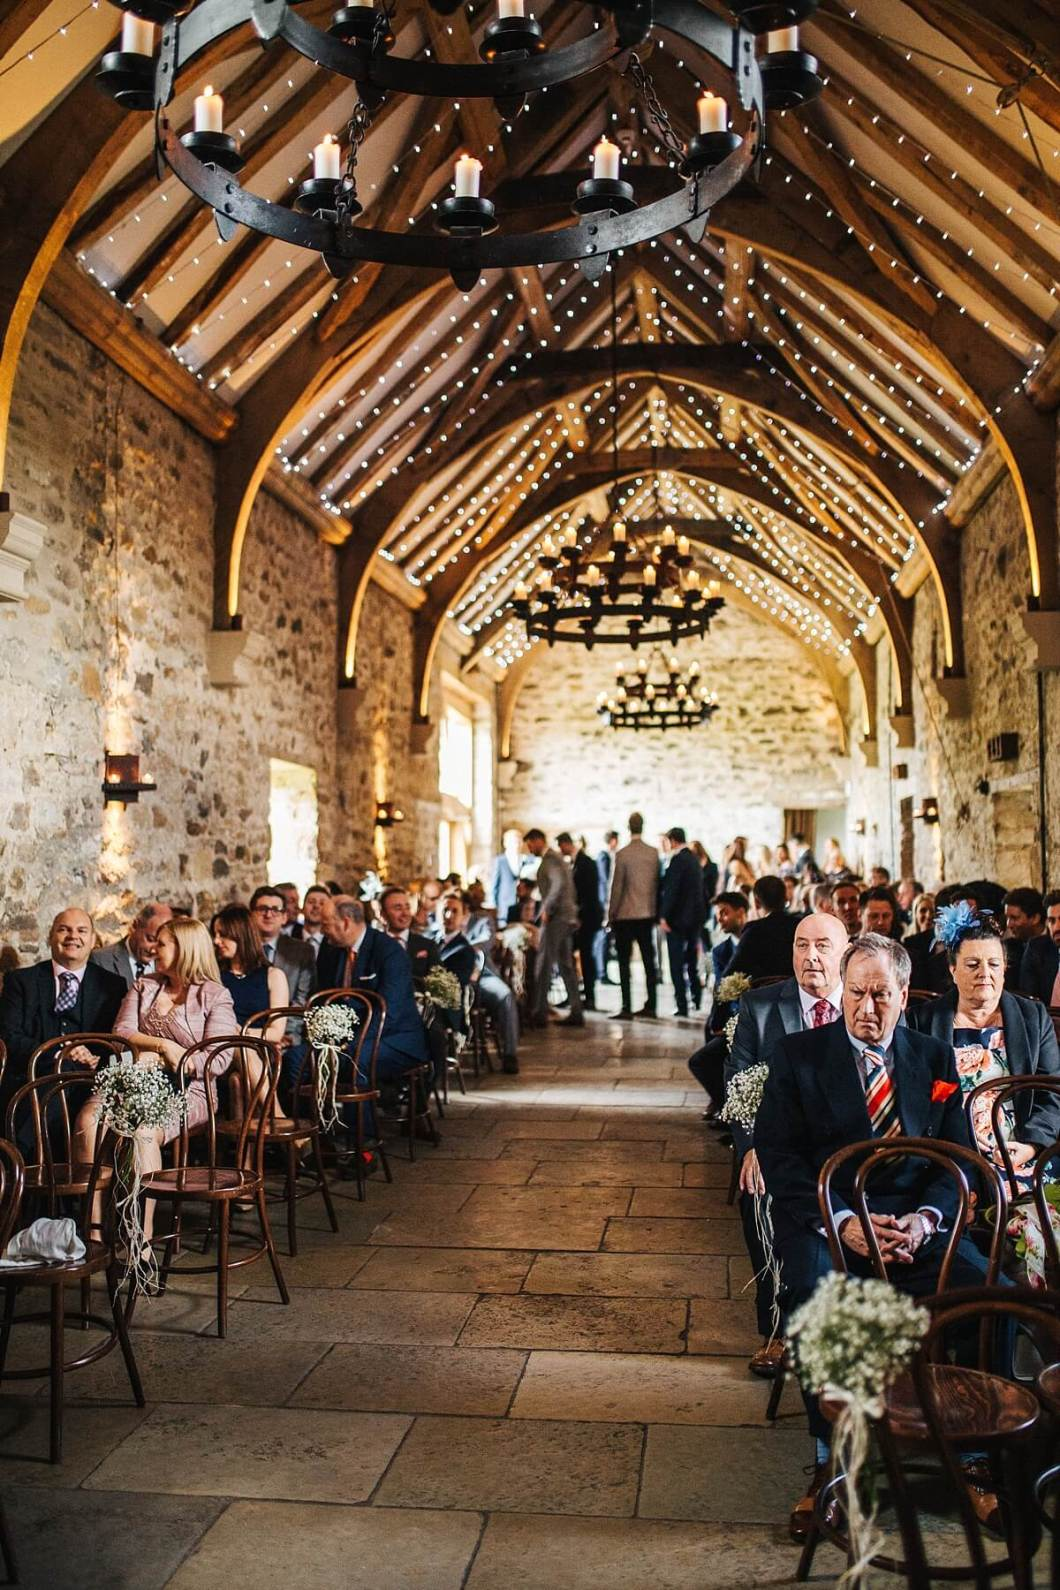 Healey barn wedding venue Northumberland